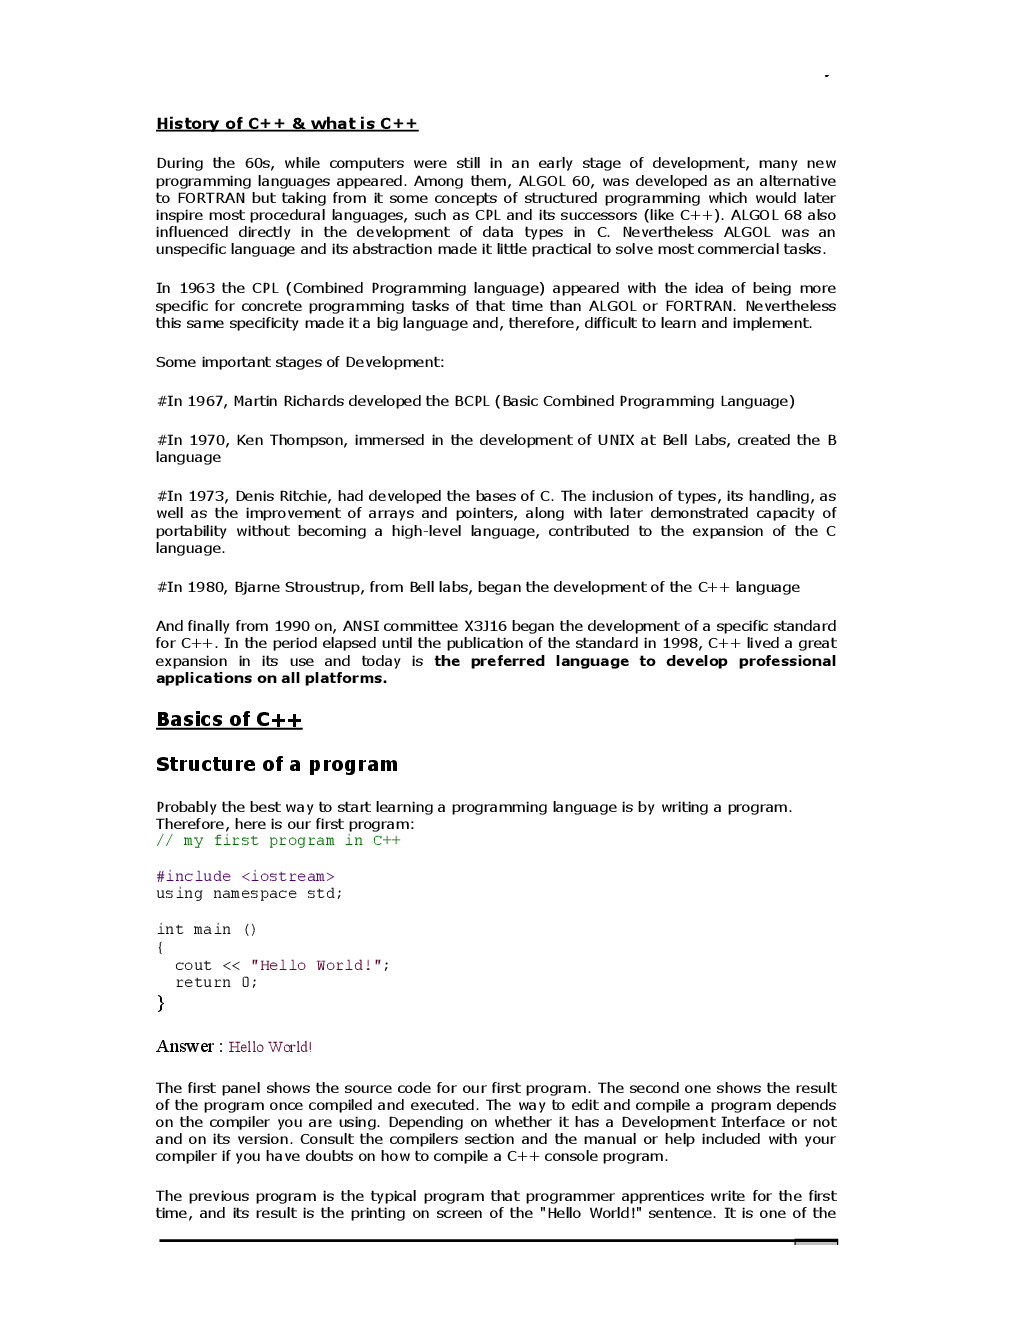 VTU eNotes On History Of C++ For Computer Science Engineering - Page 2